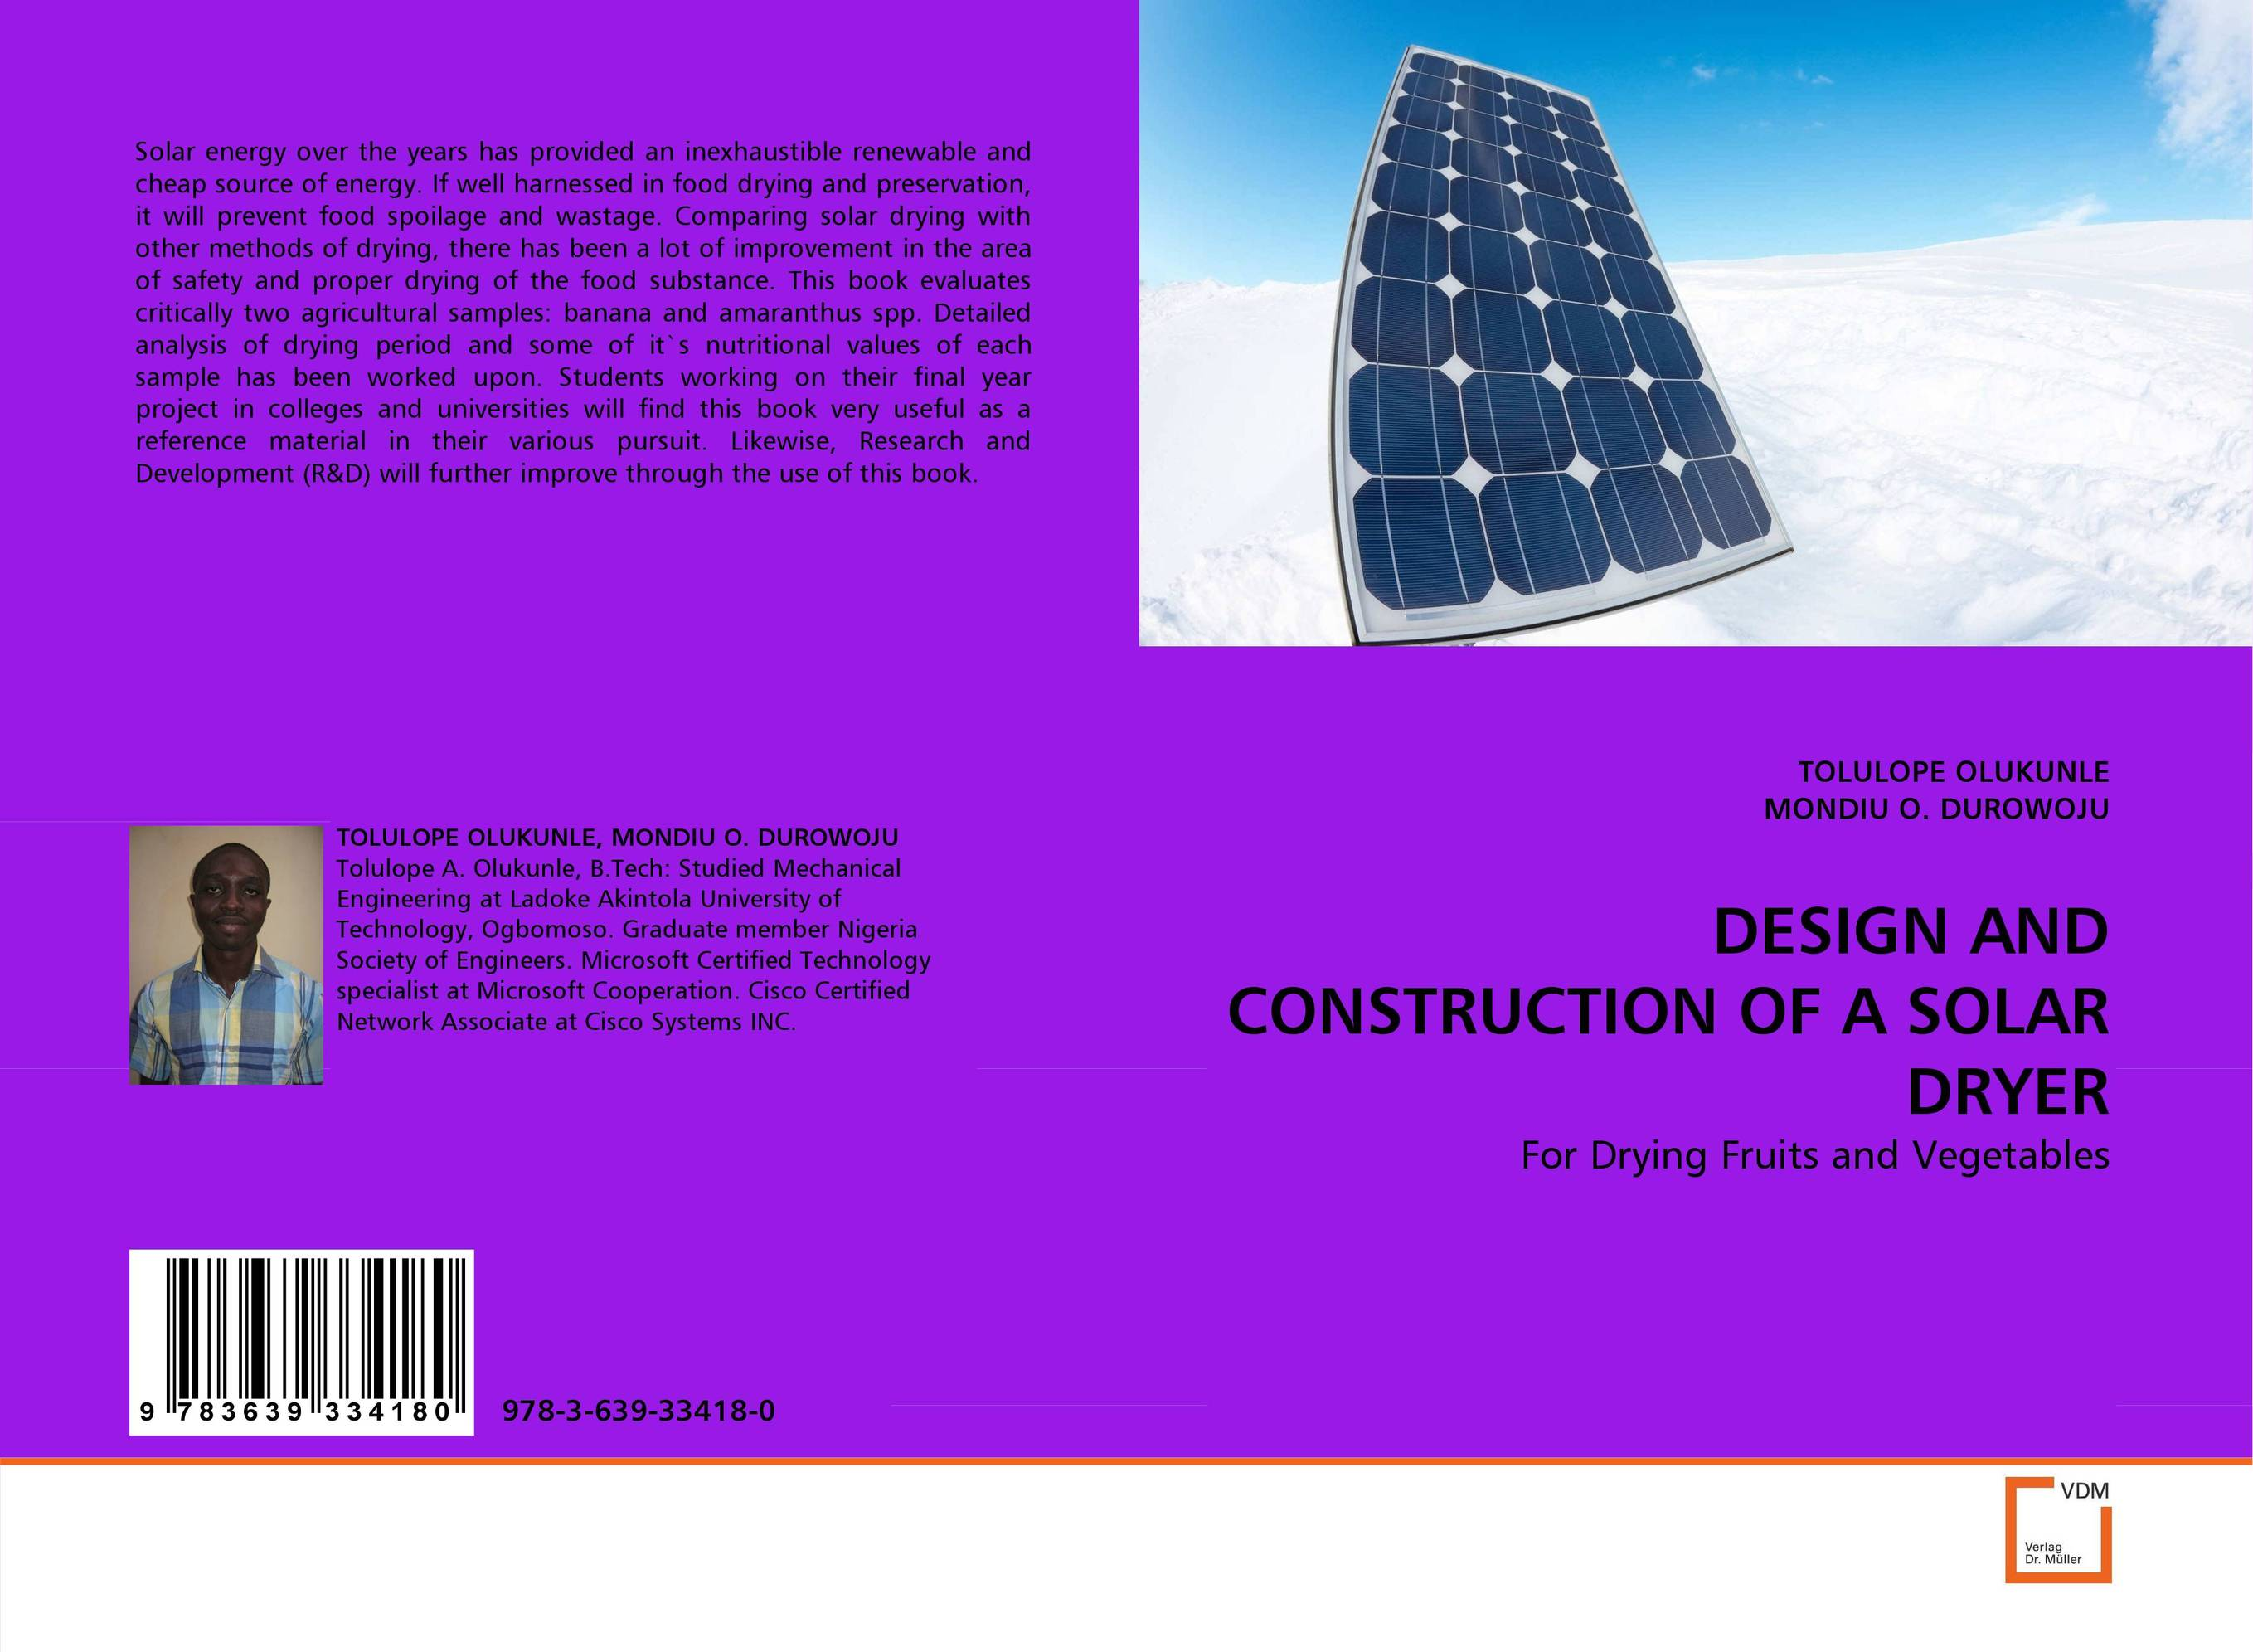 DESIGN AND CONSTRUCTION OF A SOLAR DRYER